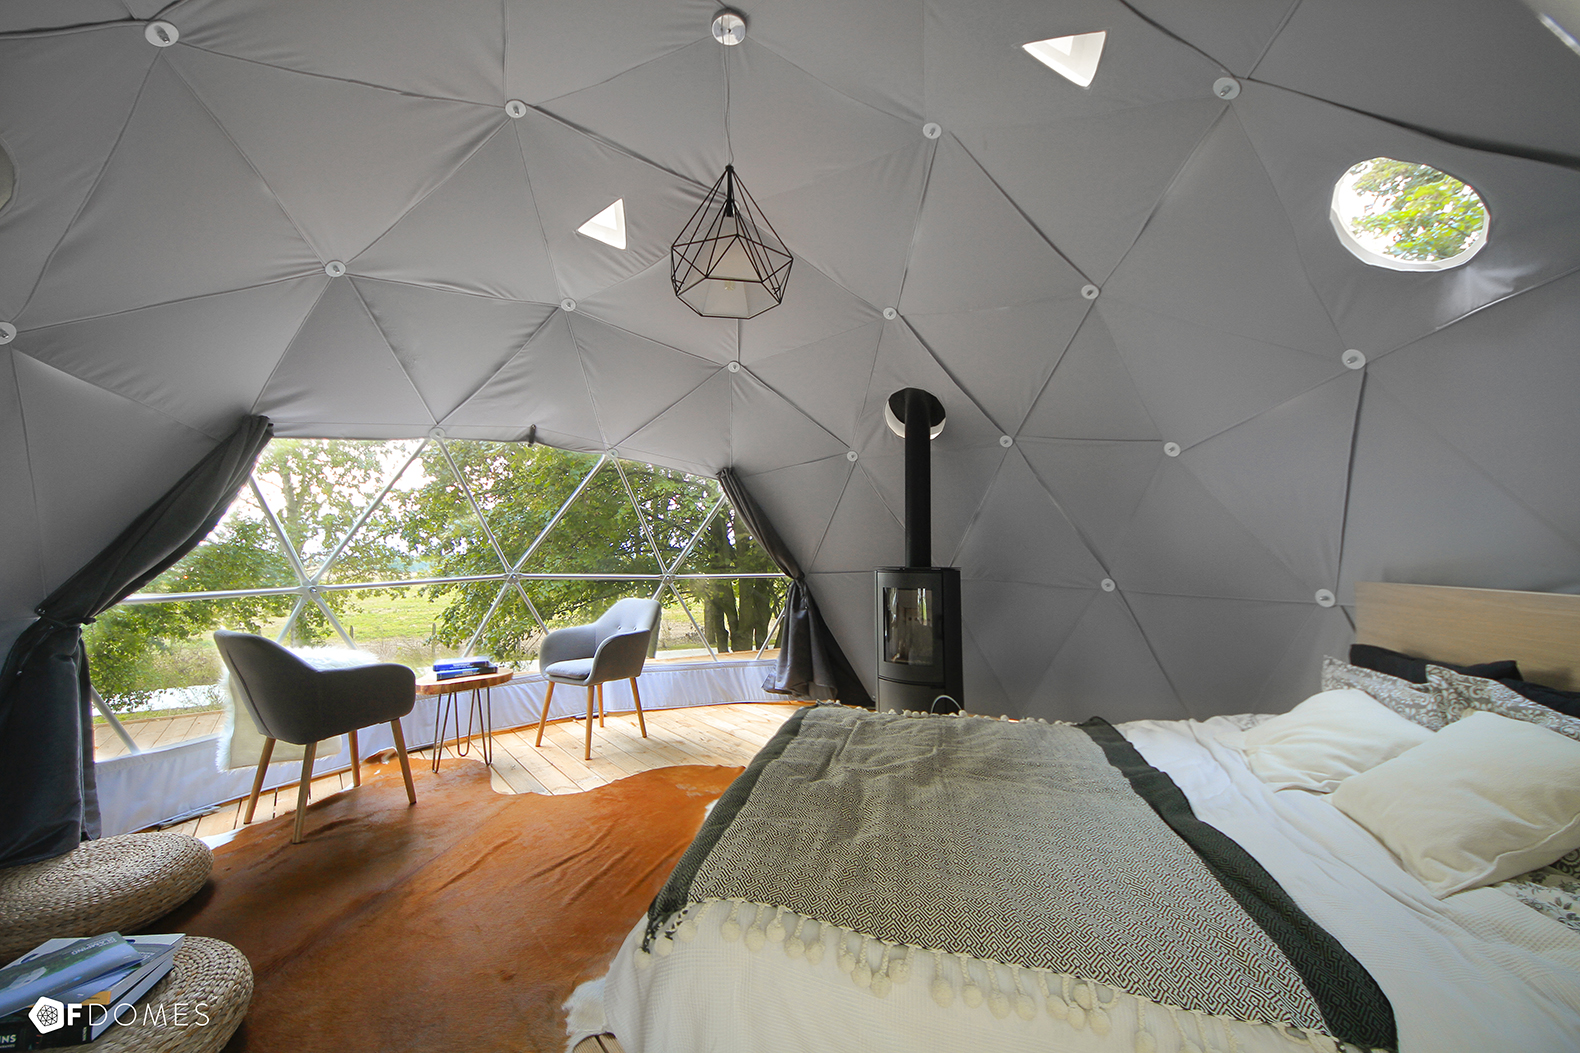 Create your own backyard geodesic dome with these super ...